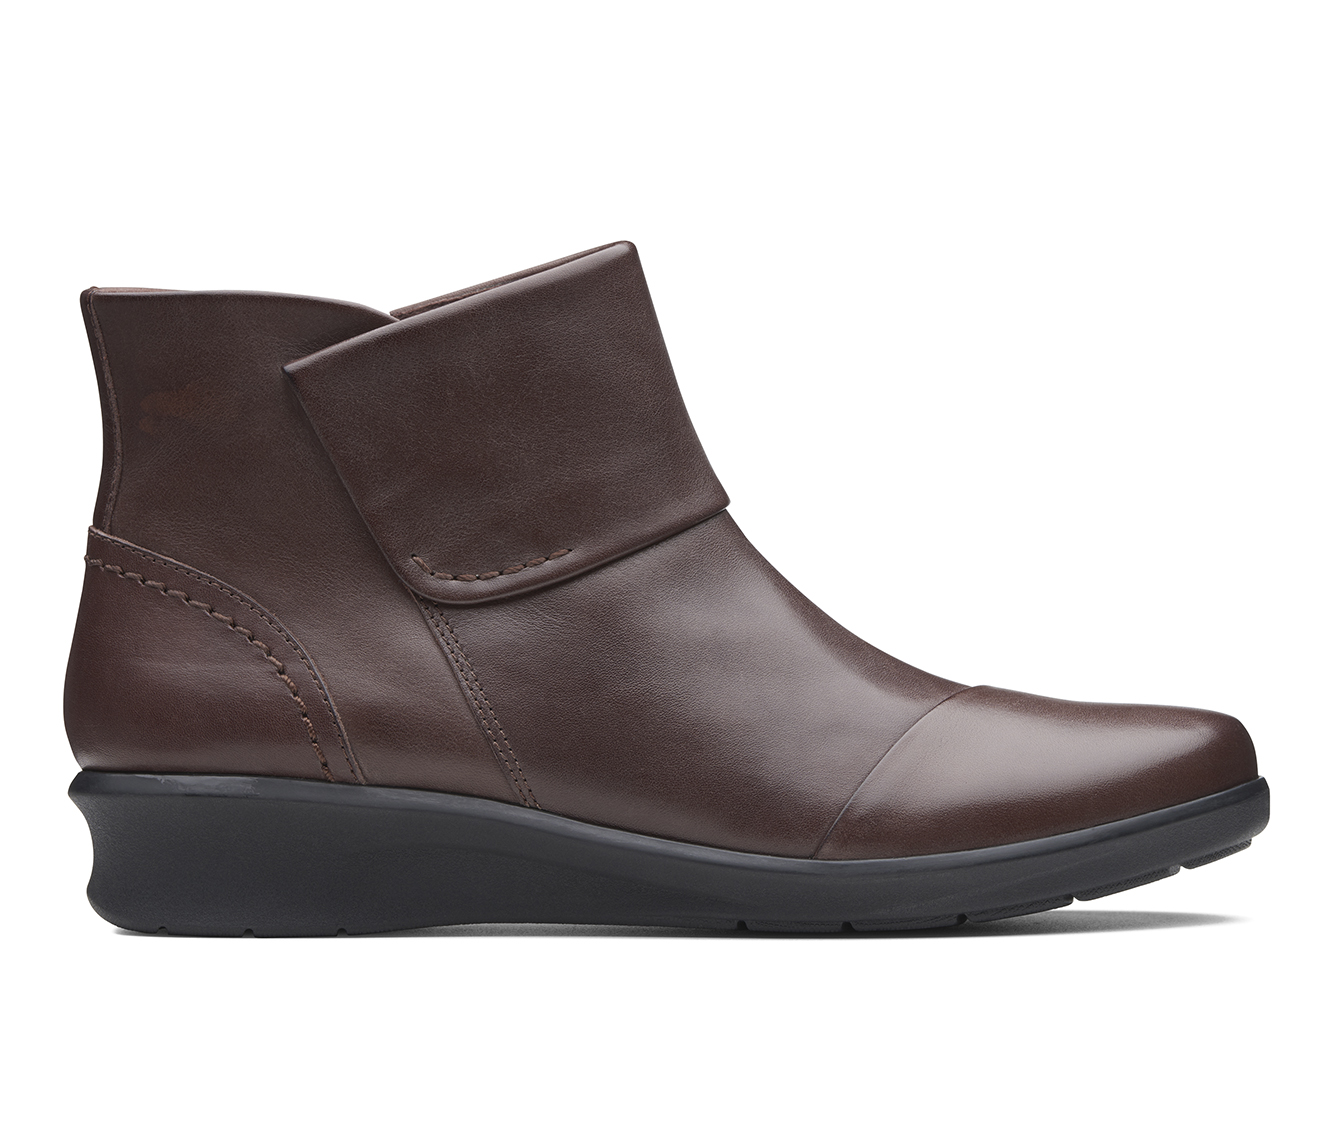 Clarks Hope Track Women's Boots (Brown - Leather)